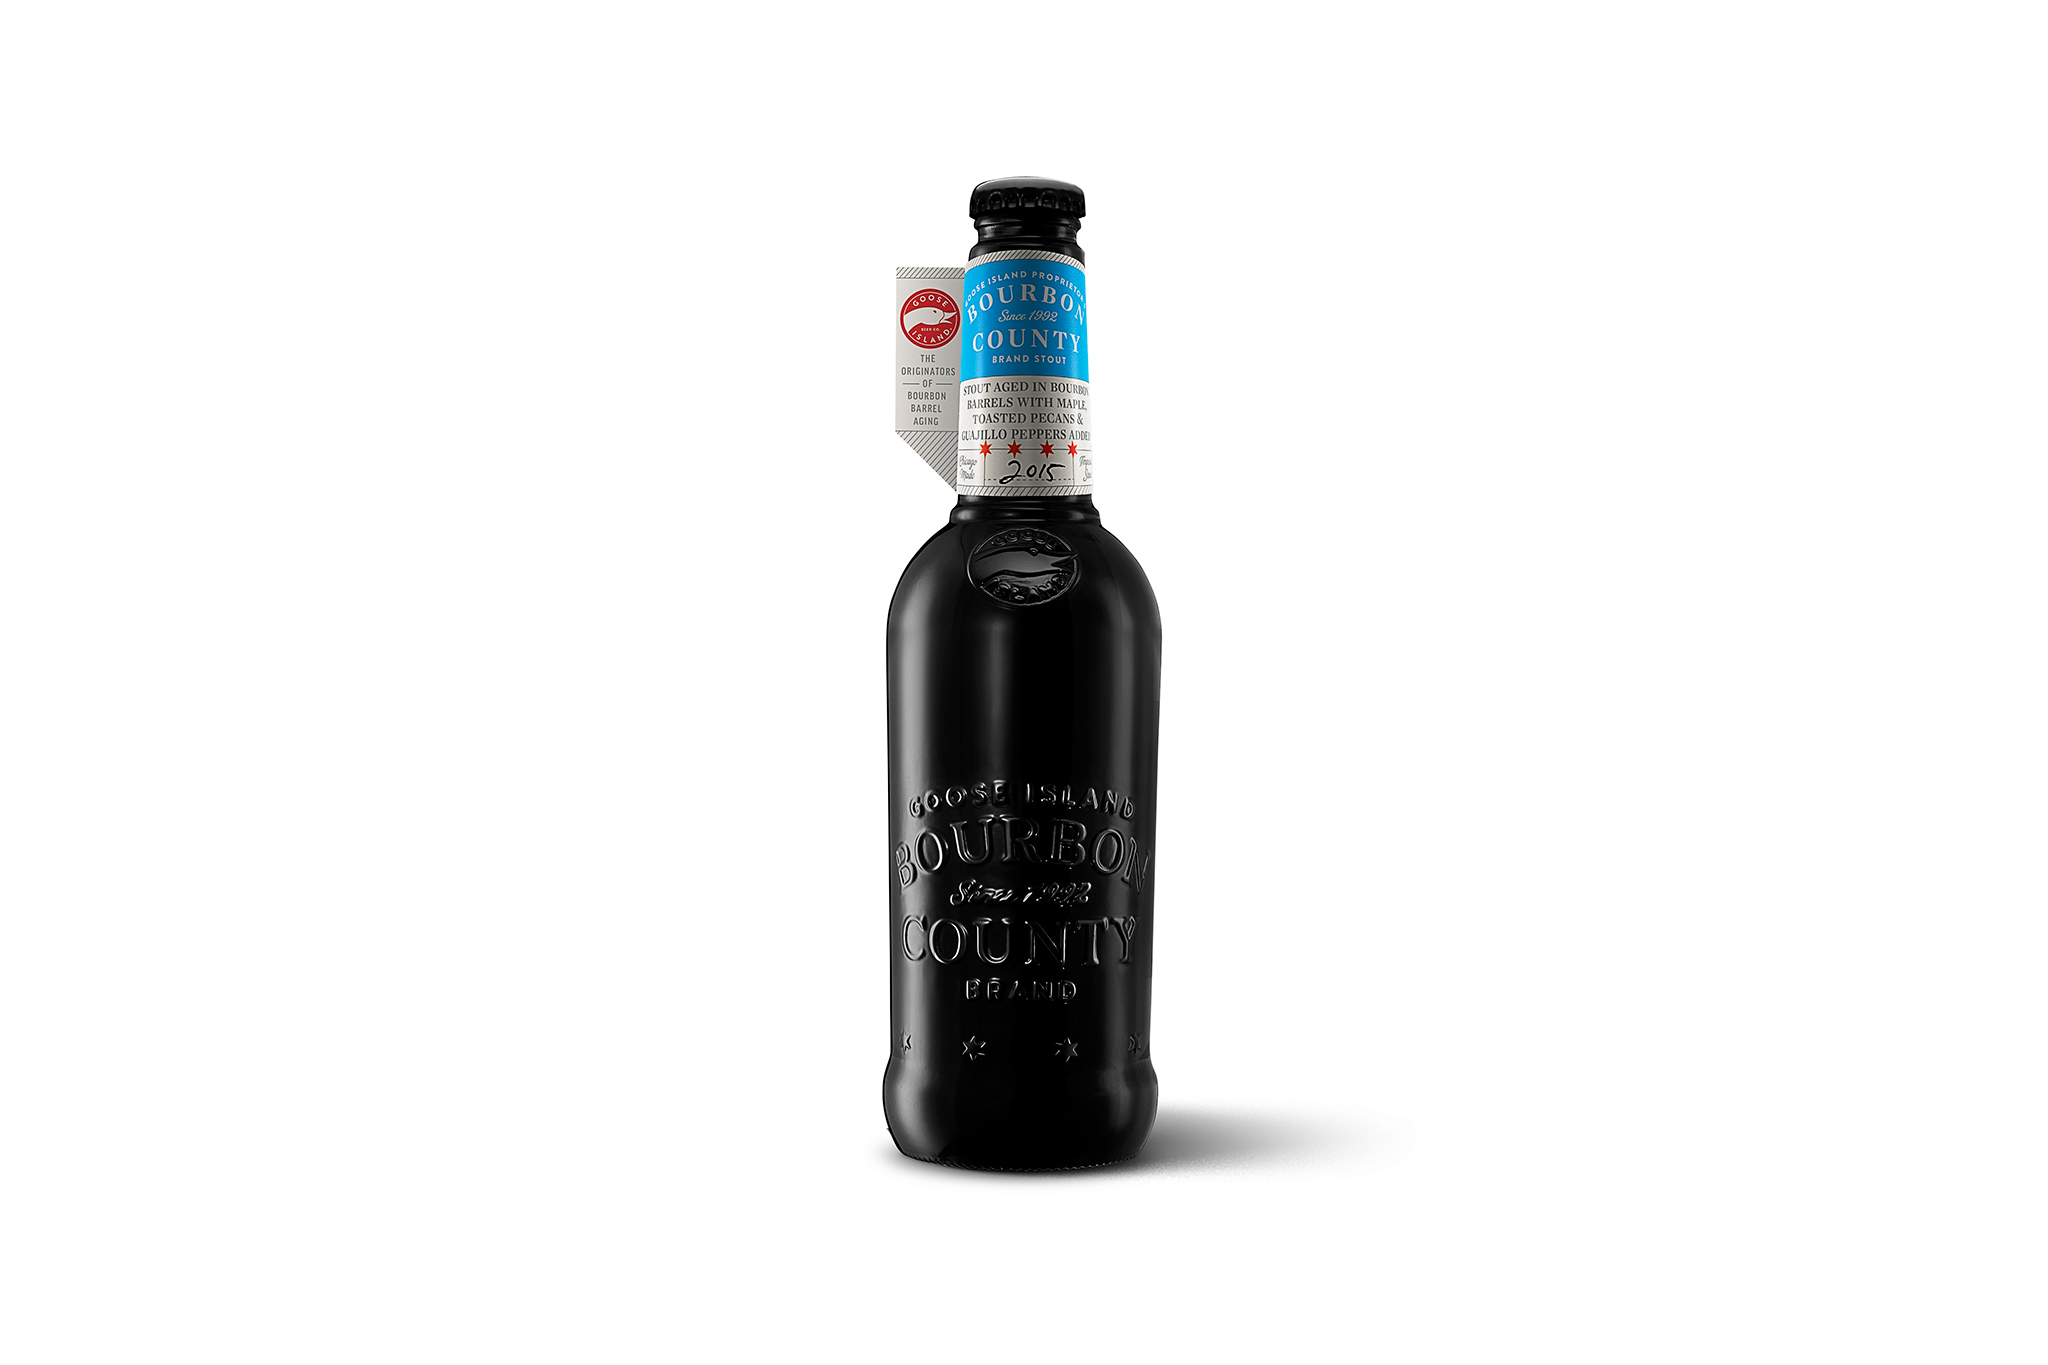 Goose Island Beer Co.'s Proprietor's Bourbon County Brand Stout